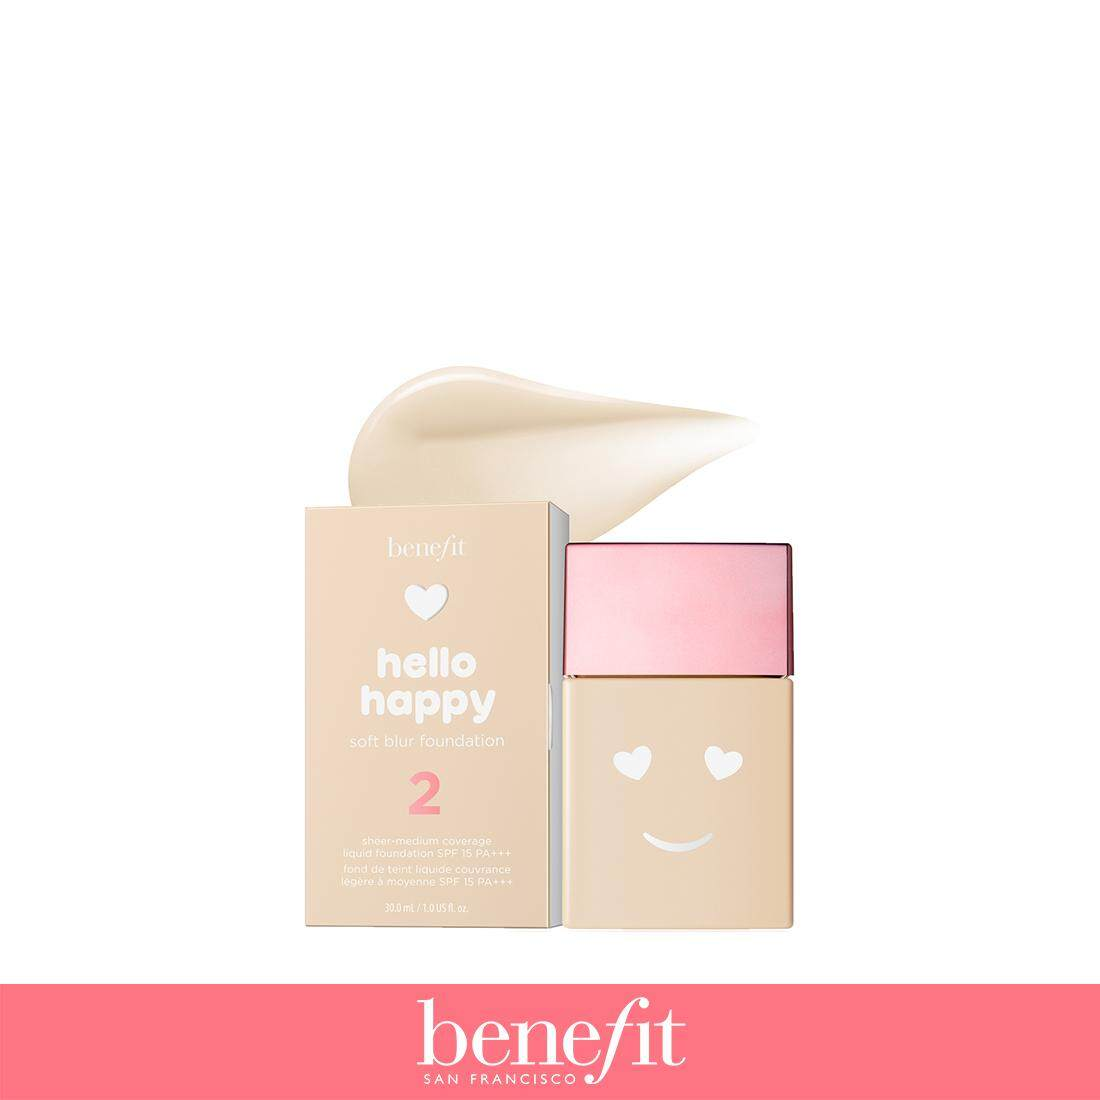 Benefit รองพื้น Hello Happy Soft Blur Foundation no.2